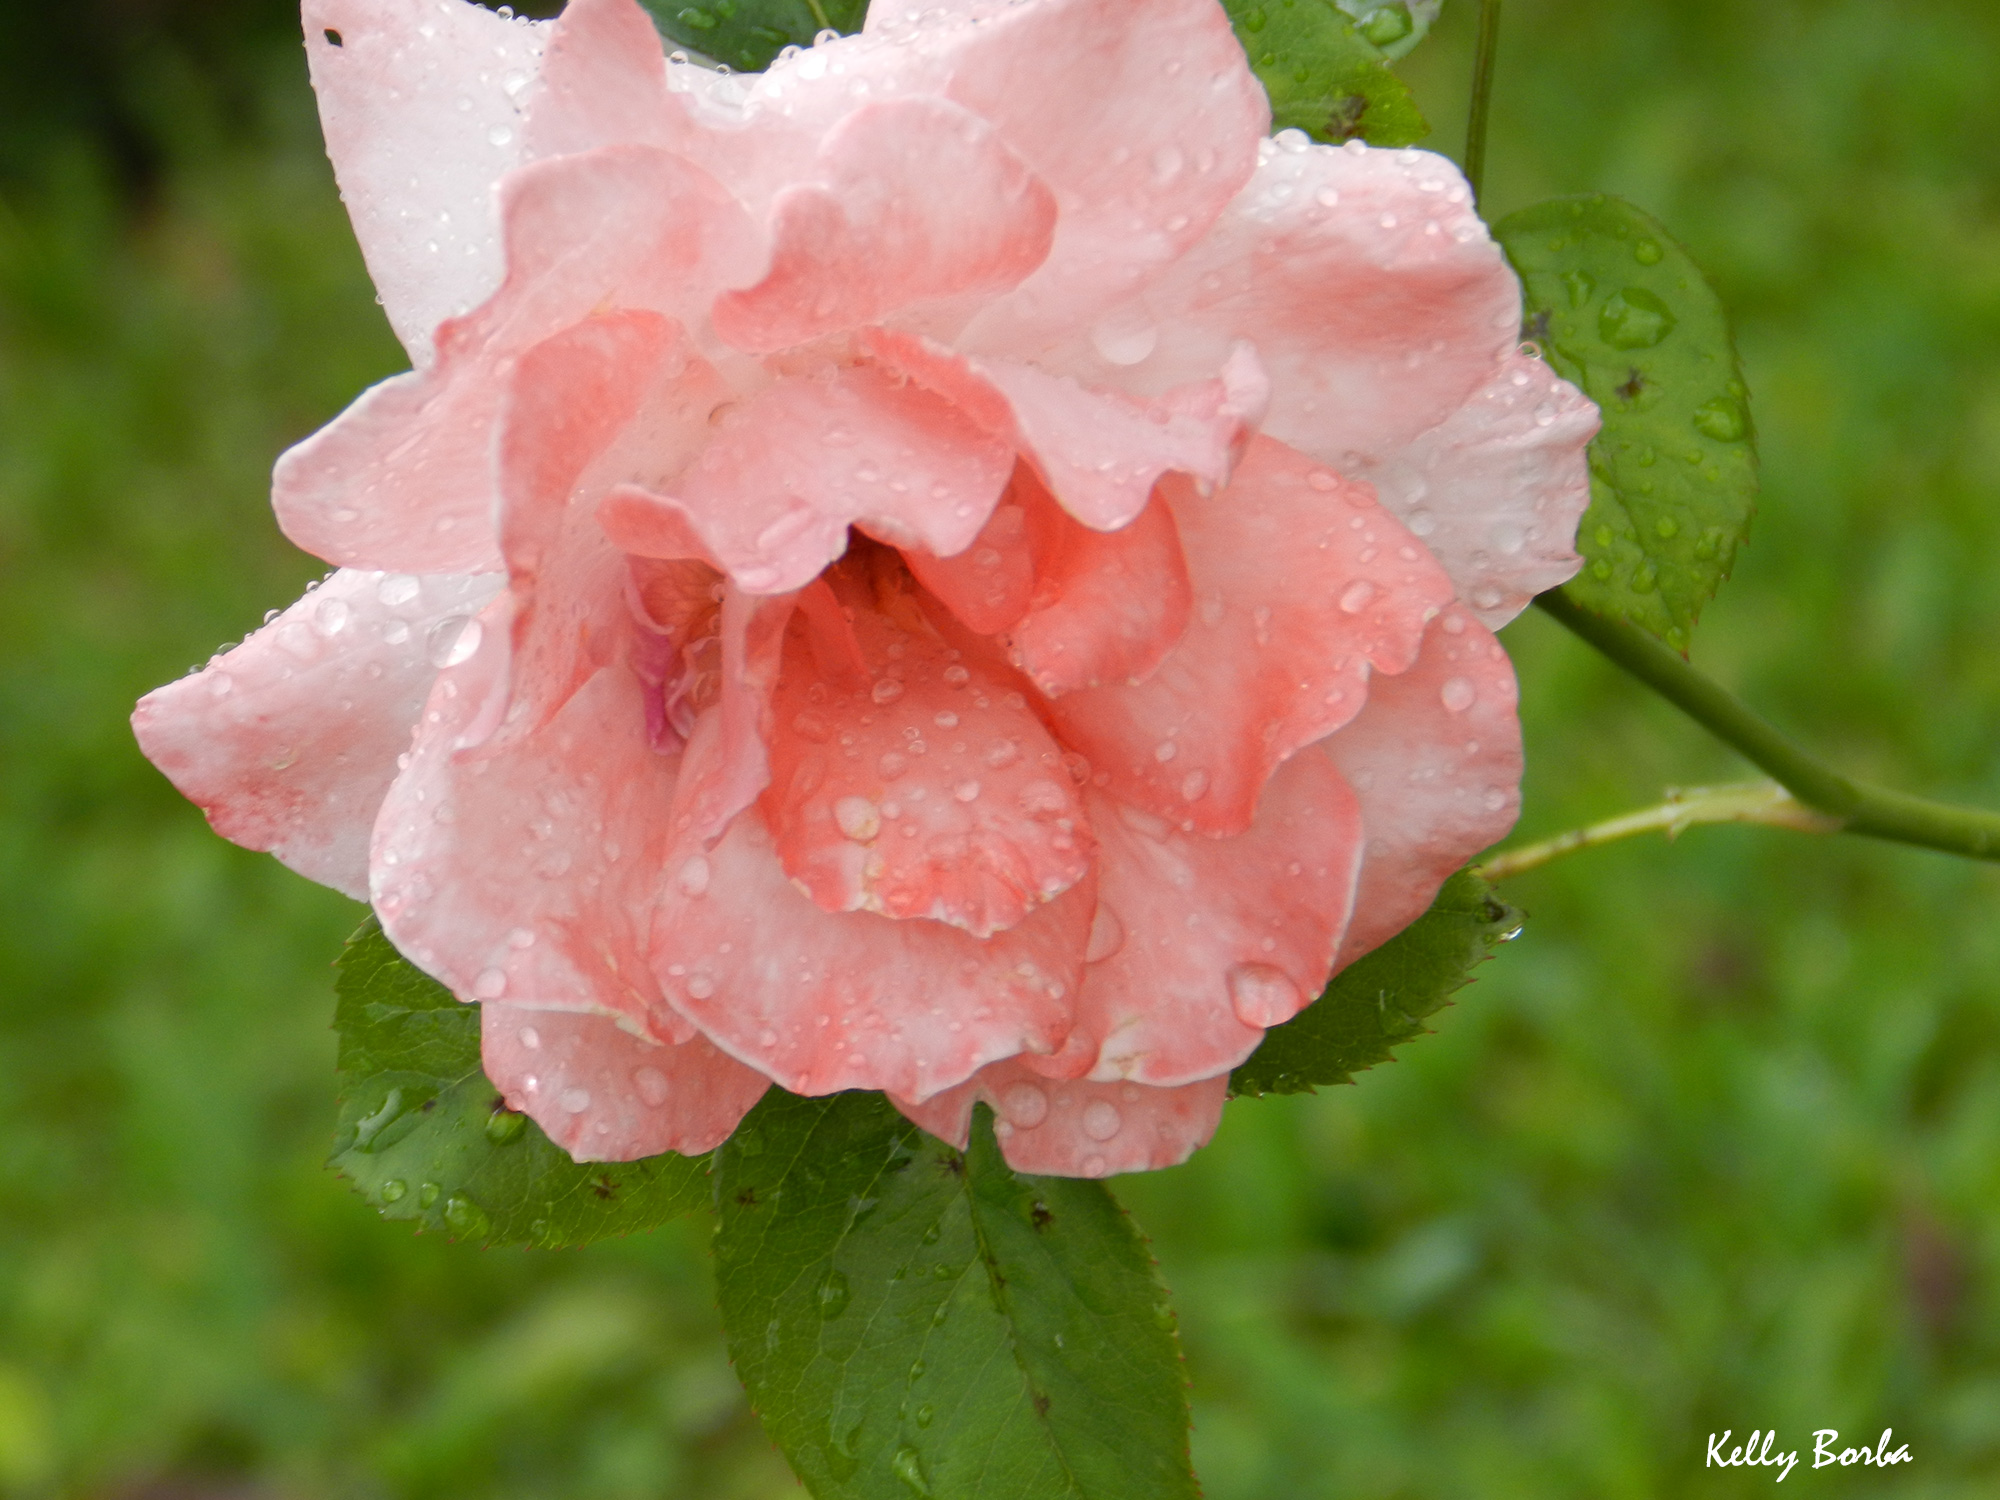 Rosa – Faxinal dos Guedes